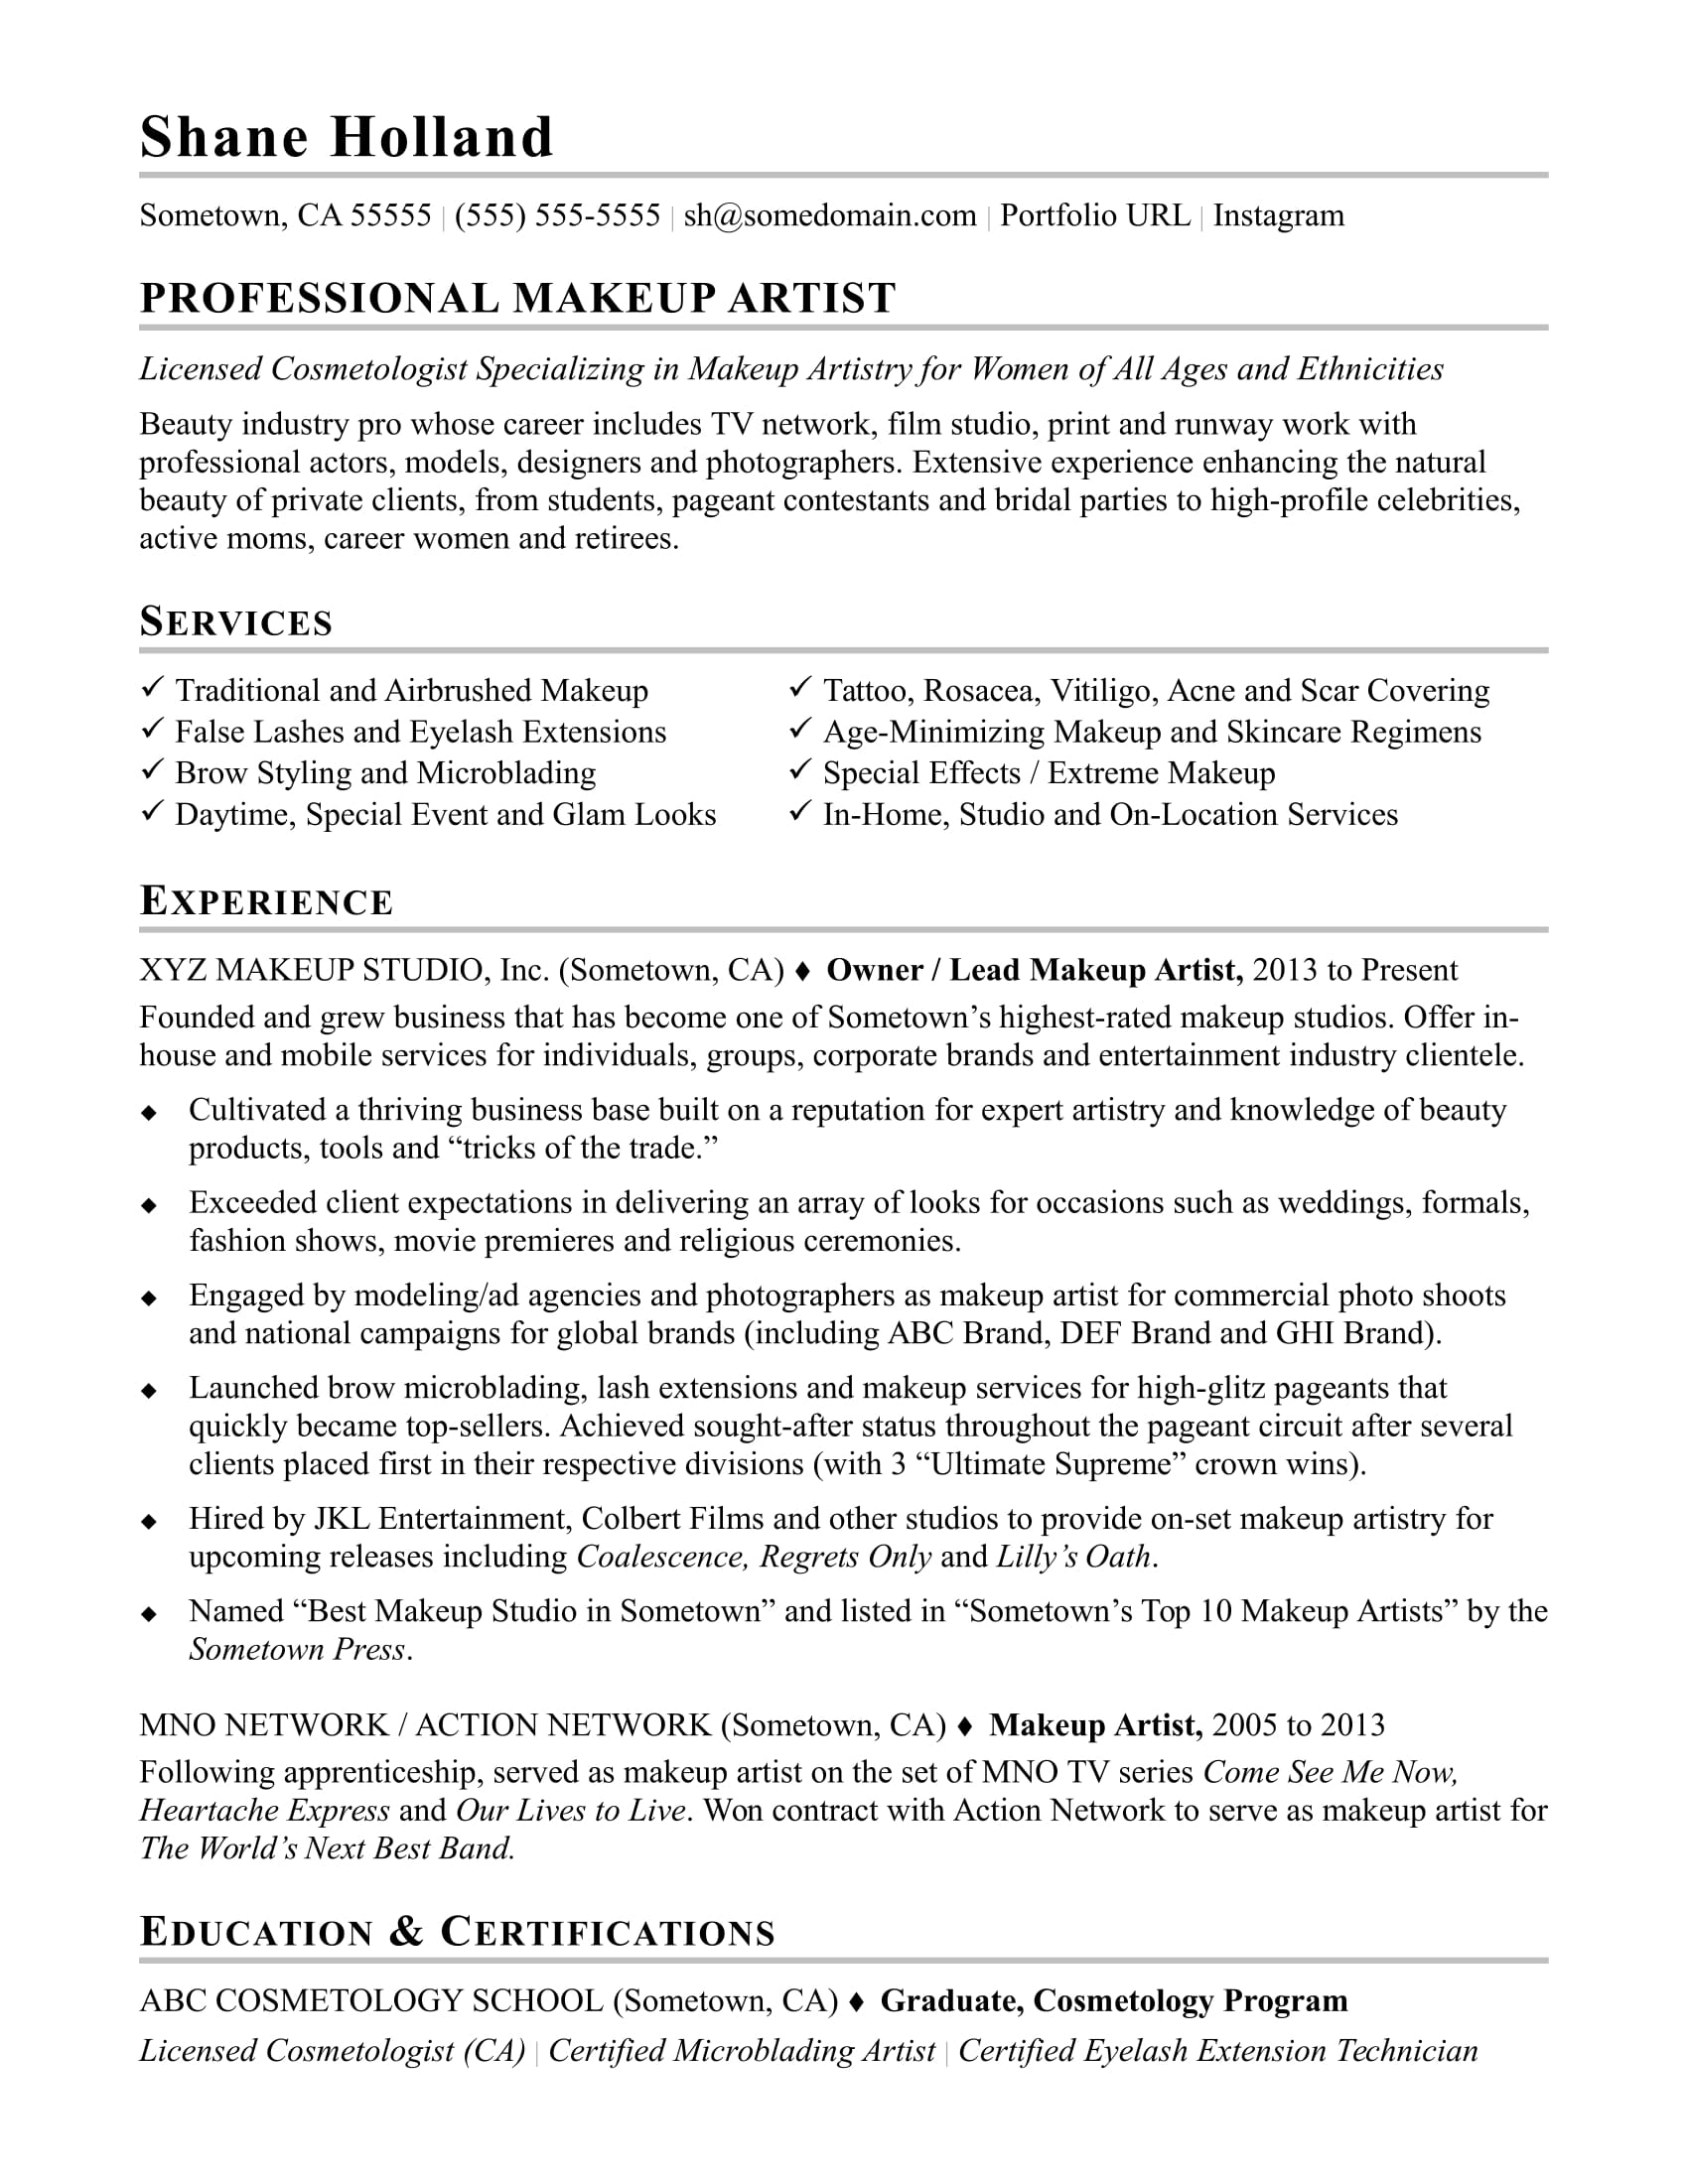 Makeup Artist Resume Sample  Entertainment Industry Resume